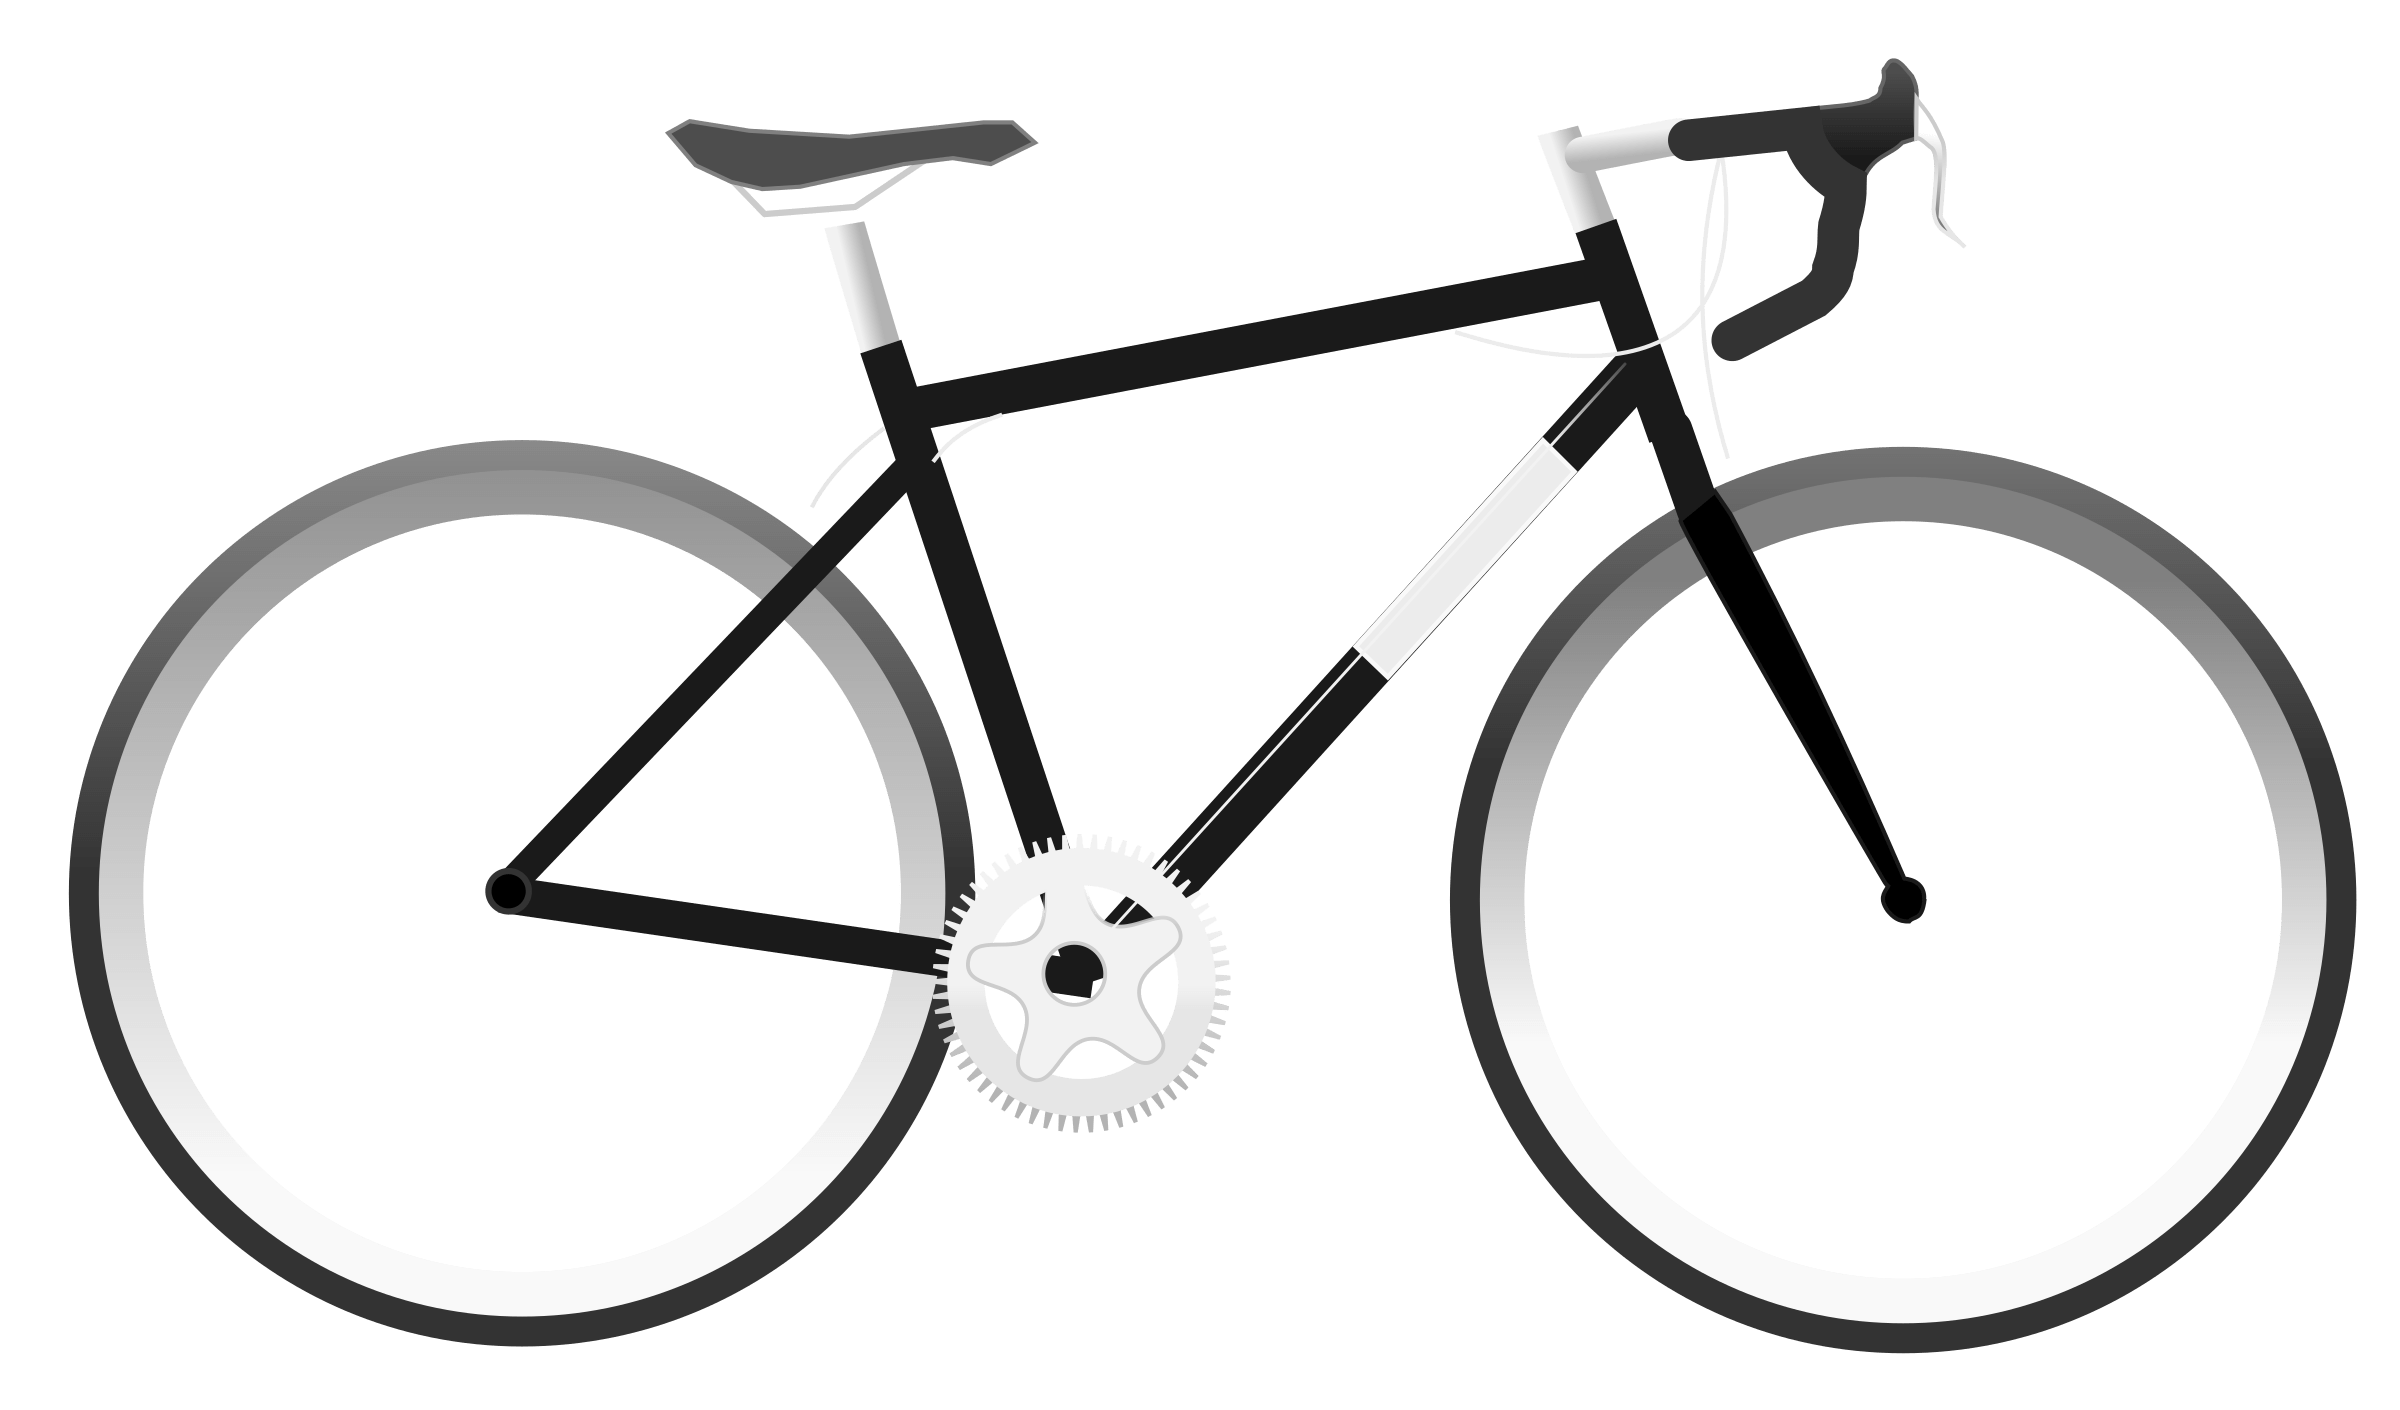 svg royalty free stock Bike clipart. Simple transparent png stickpng